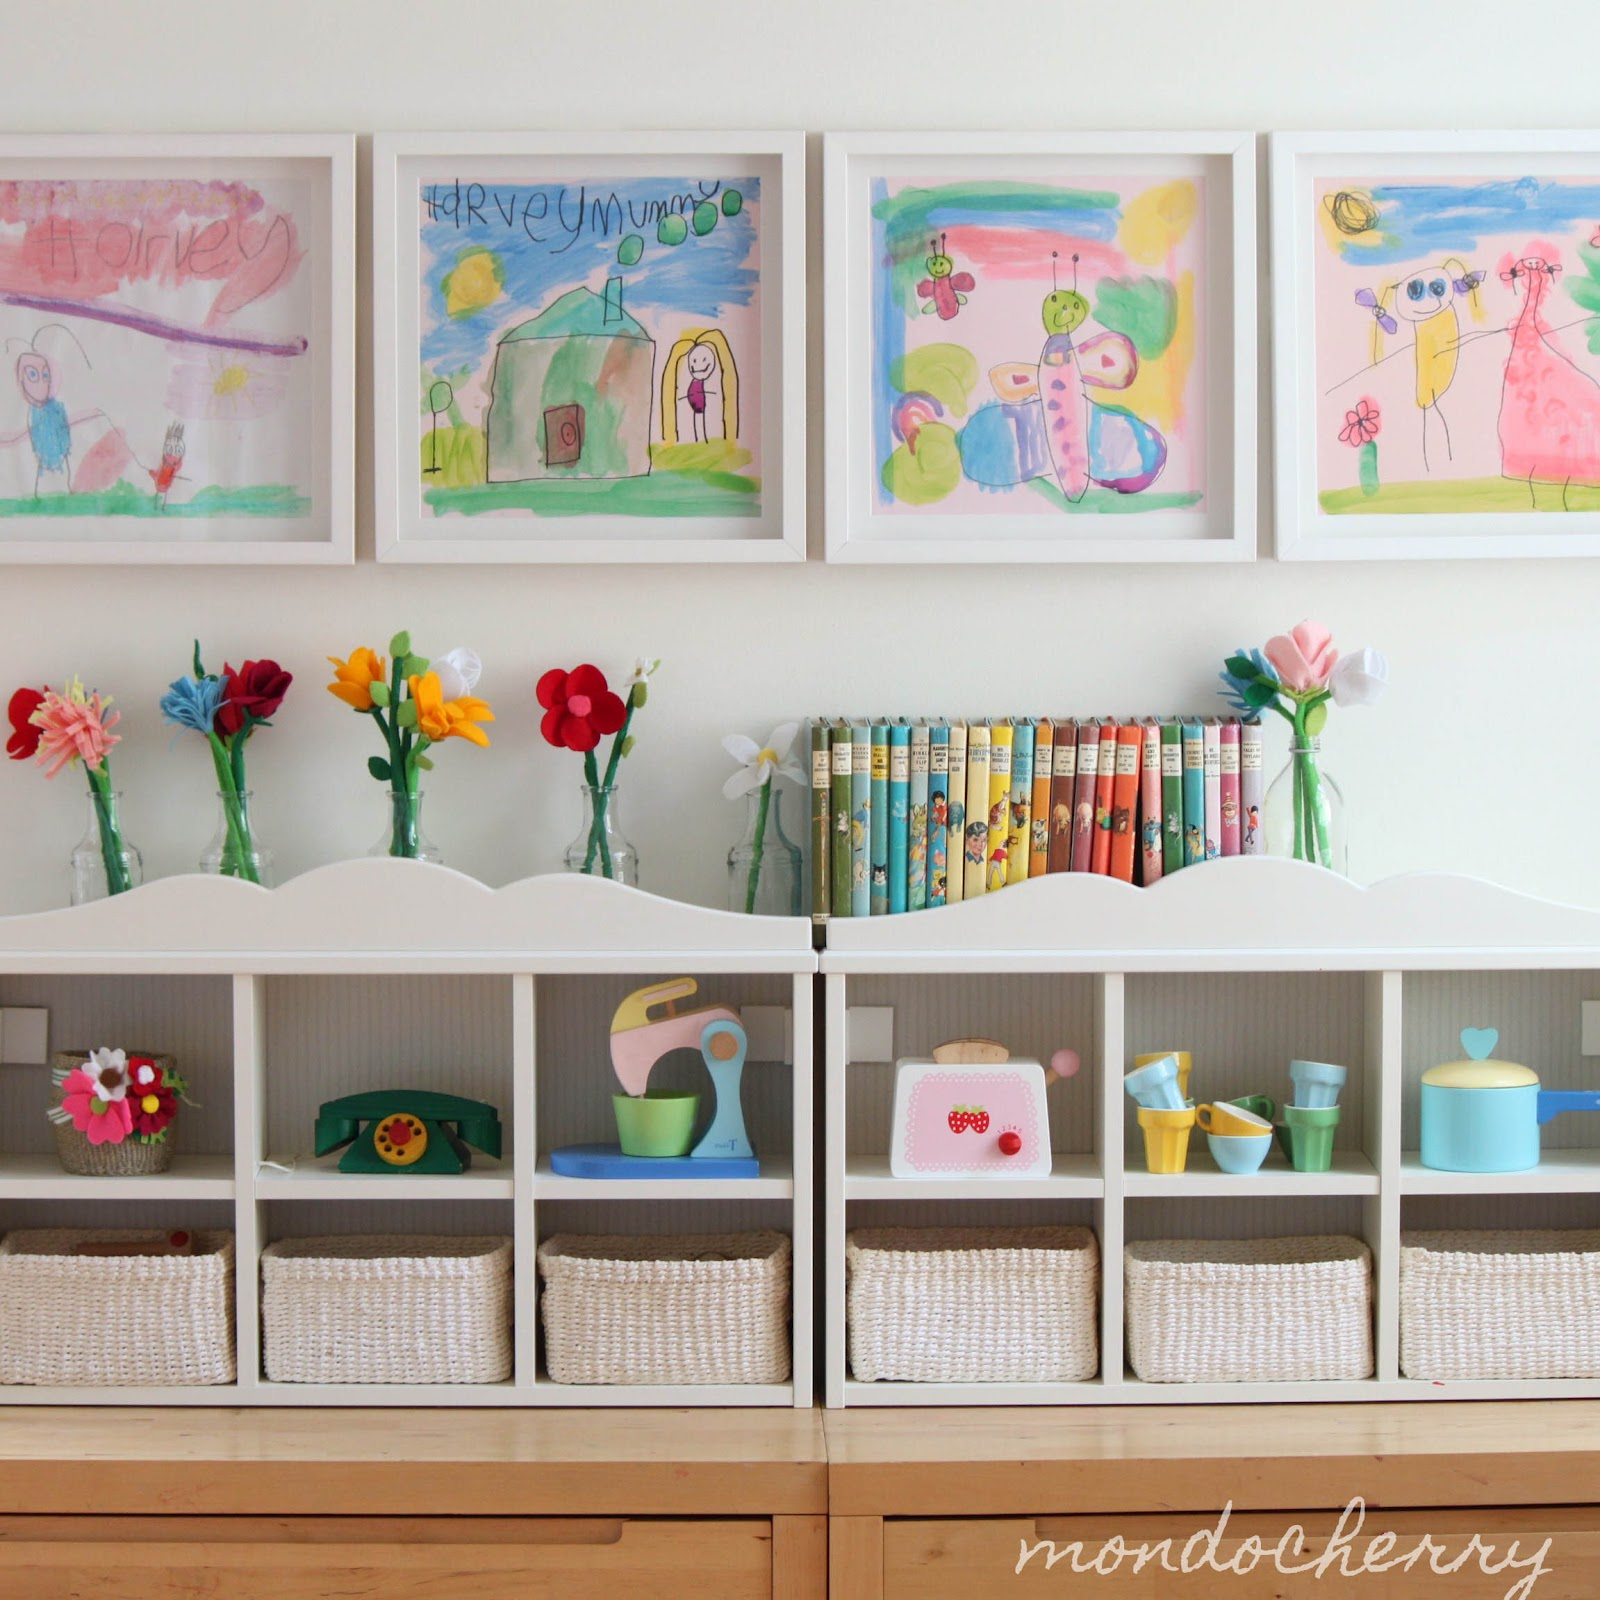 Clever And Creative Ideas For The Ultimate Playroom: Kids Playroom Designs & Ideas